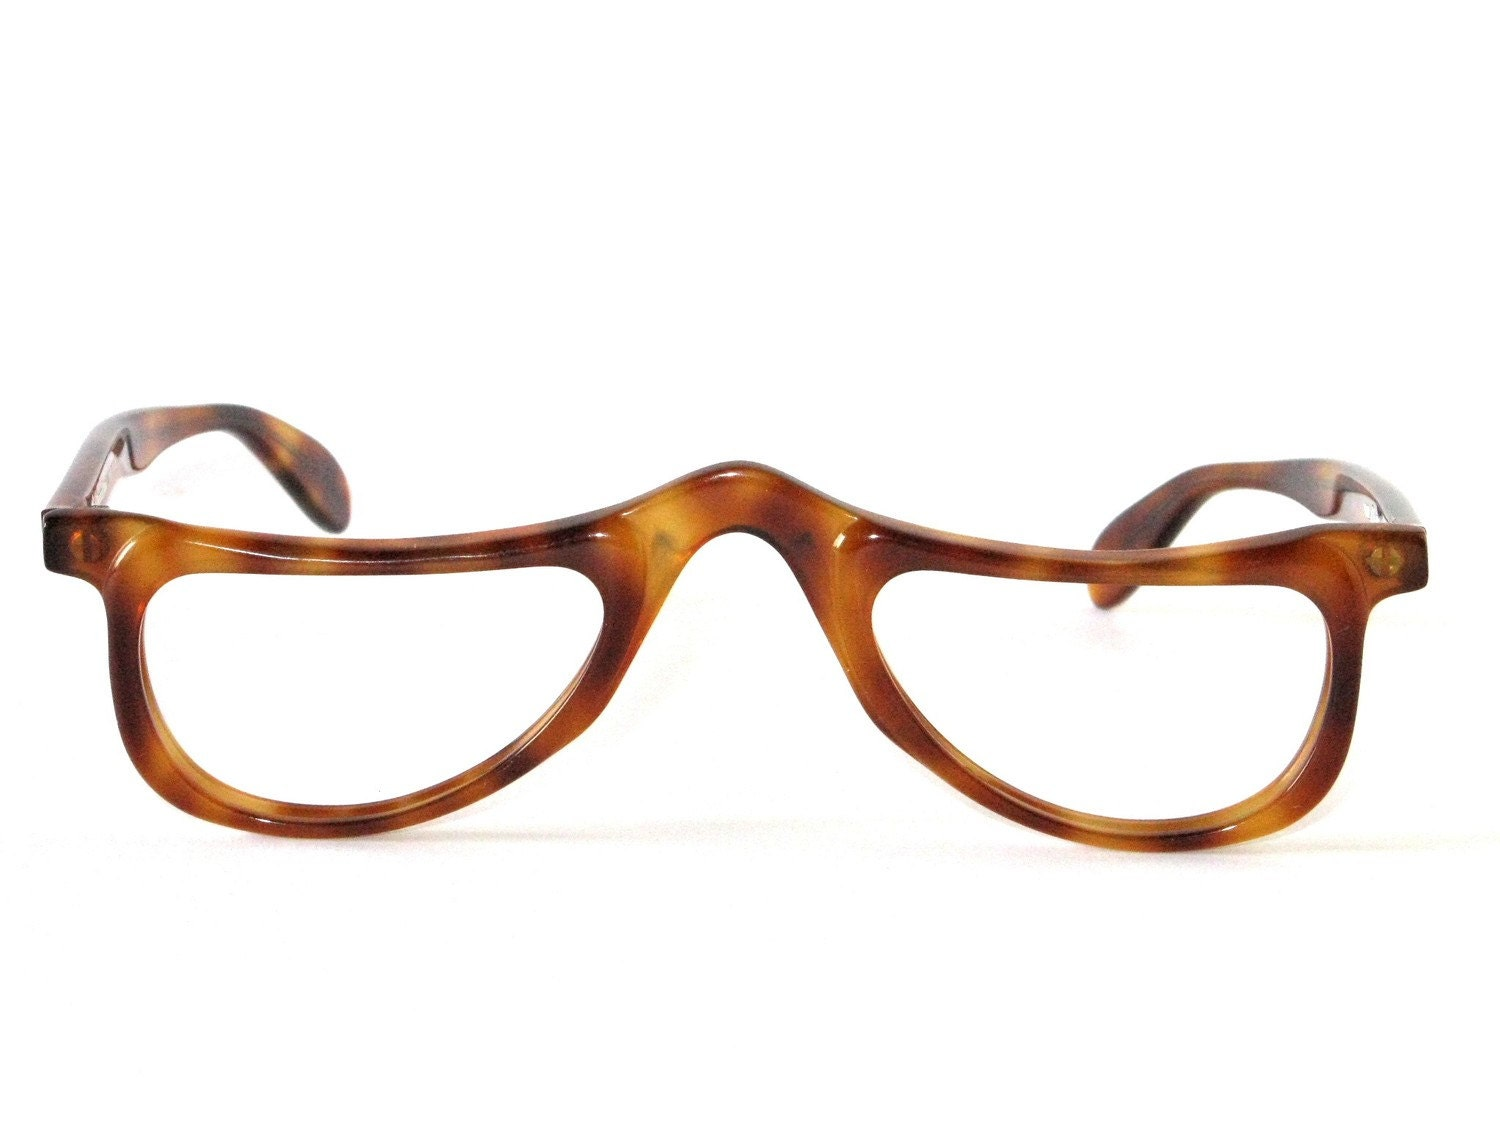 EYEGLASSES FRAME ANGLO AMERICAN OPTICAL 4 1/2 NEW OLD by ...